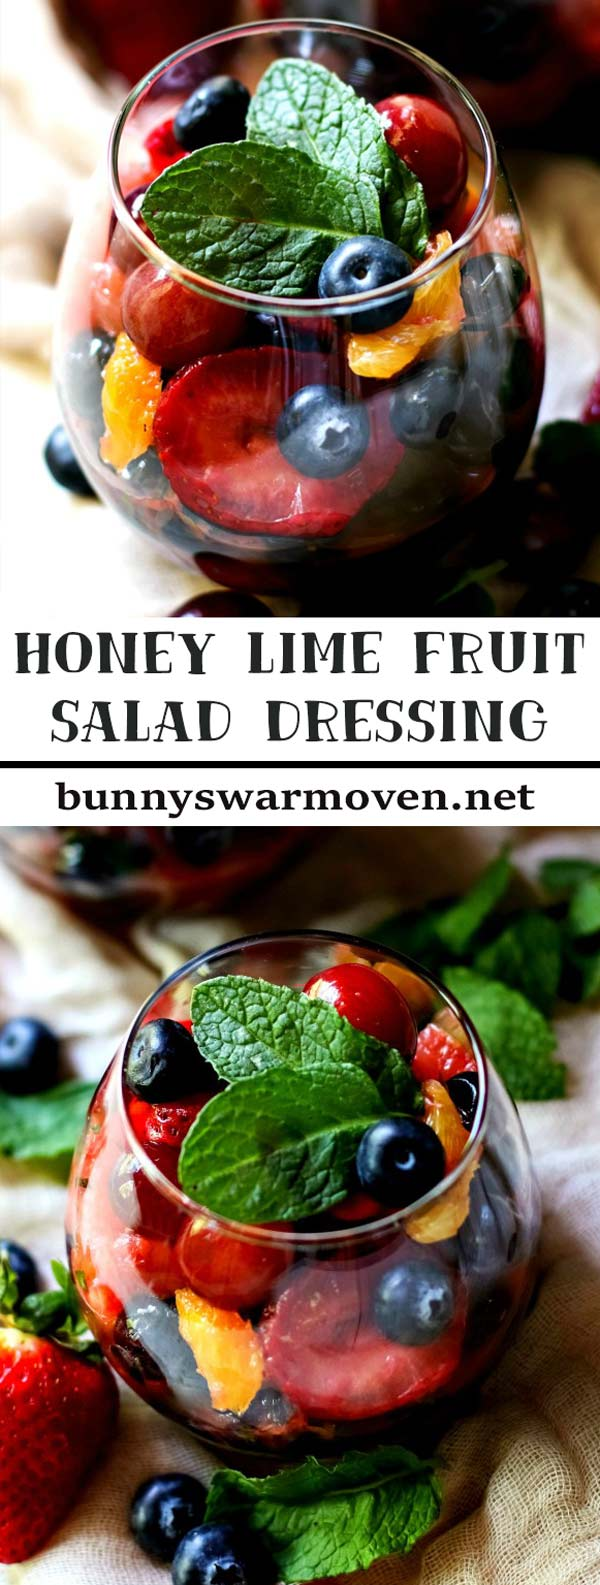 Honey Lime Fruit Salad Dressing gives fresh fruit salad a very bright, fresh flavor. The dressing pairs well with any fruit. Whether you make this dressing and use it with summer or winter fruit, it'll be a wonderful and welcome treat.